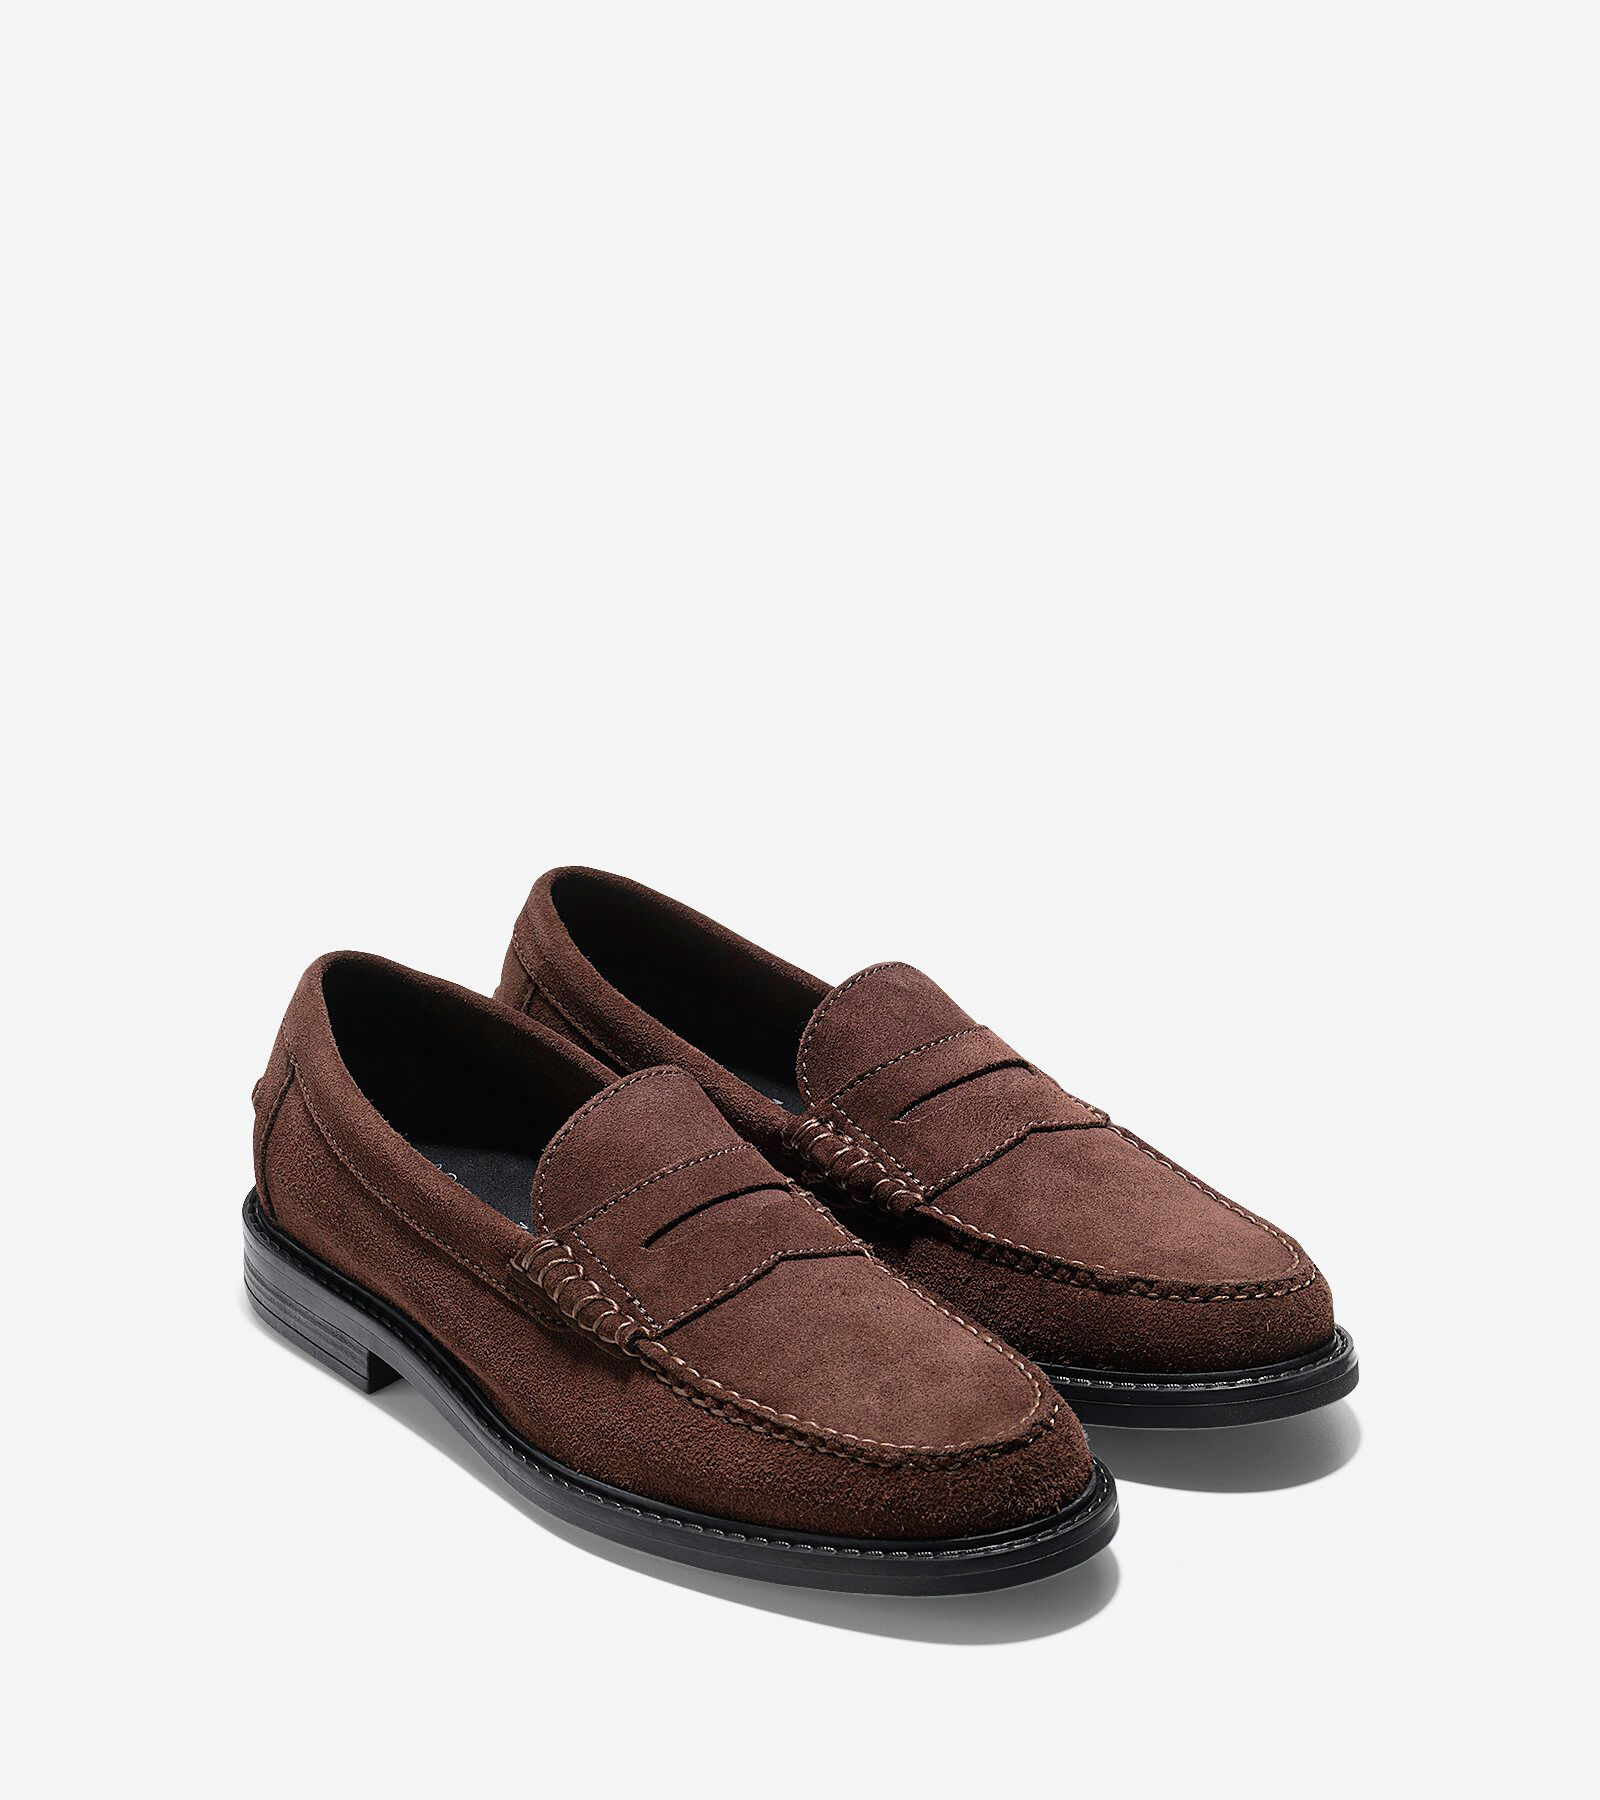 ... Men's Pinch Campus Penny Loafer · Men's Pinch Campus Penny Loafer. # colehaan